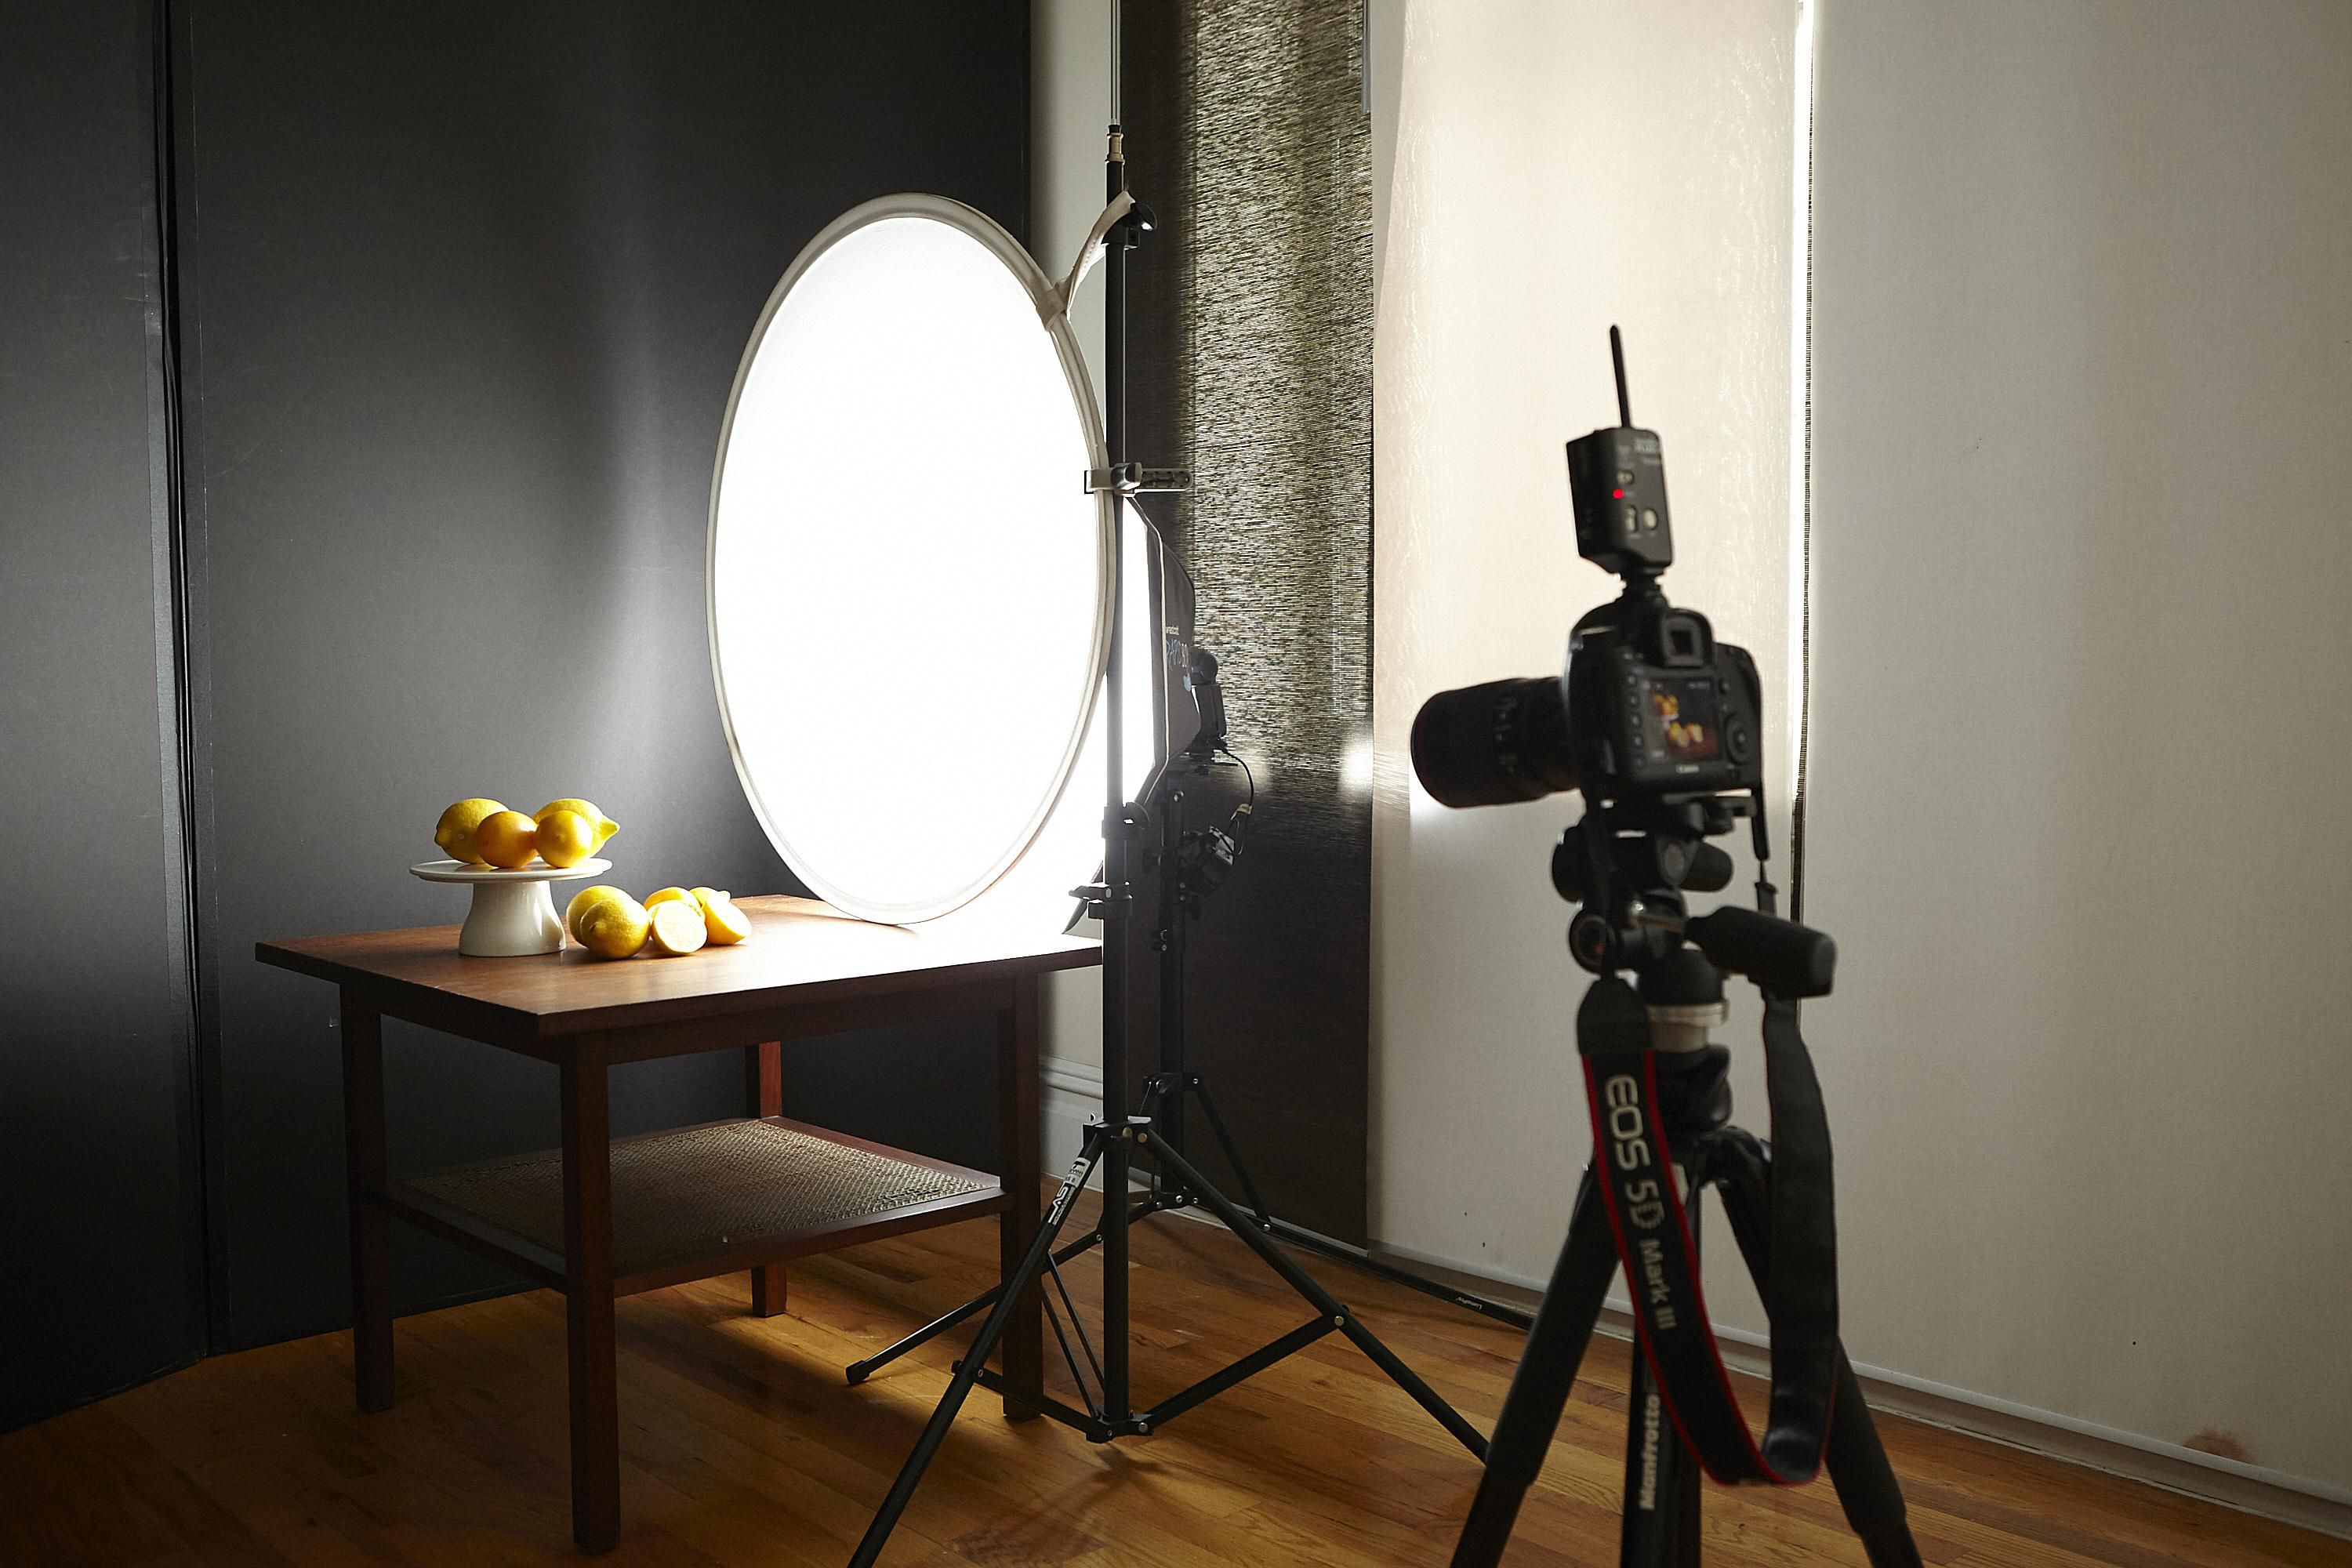 Photographing Food With Speedlights